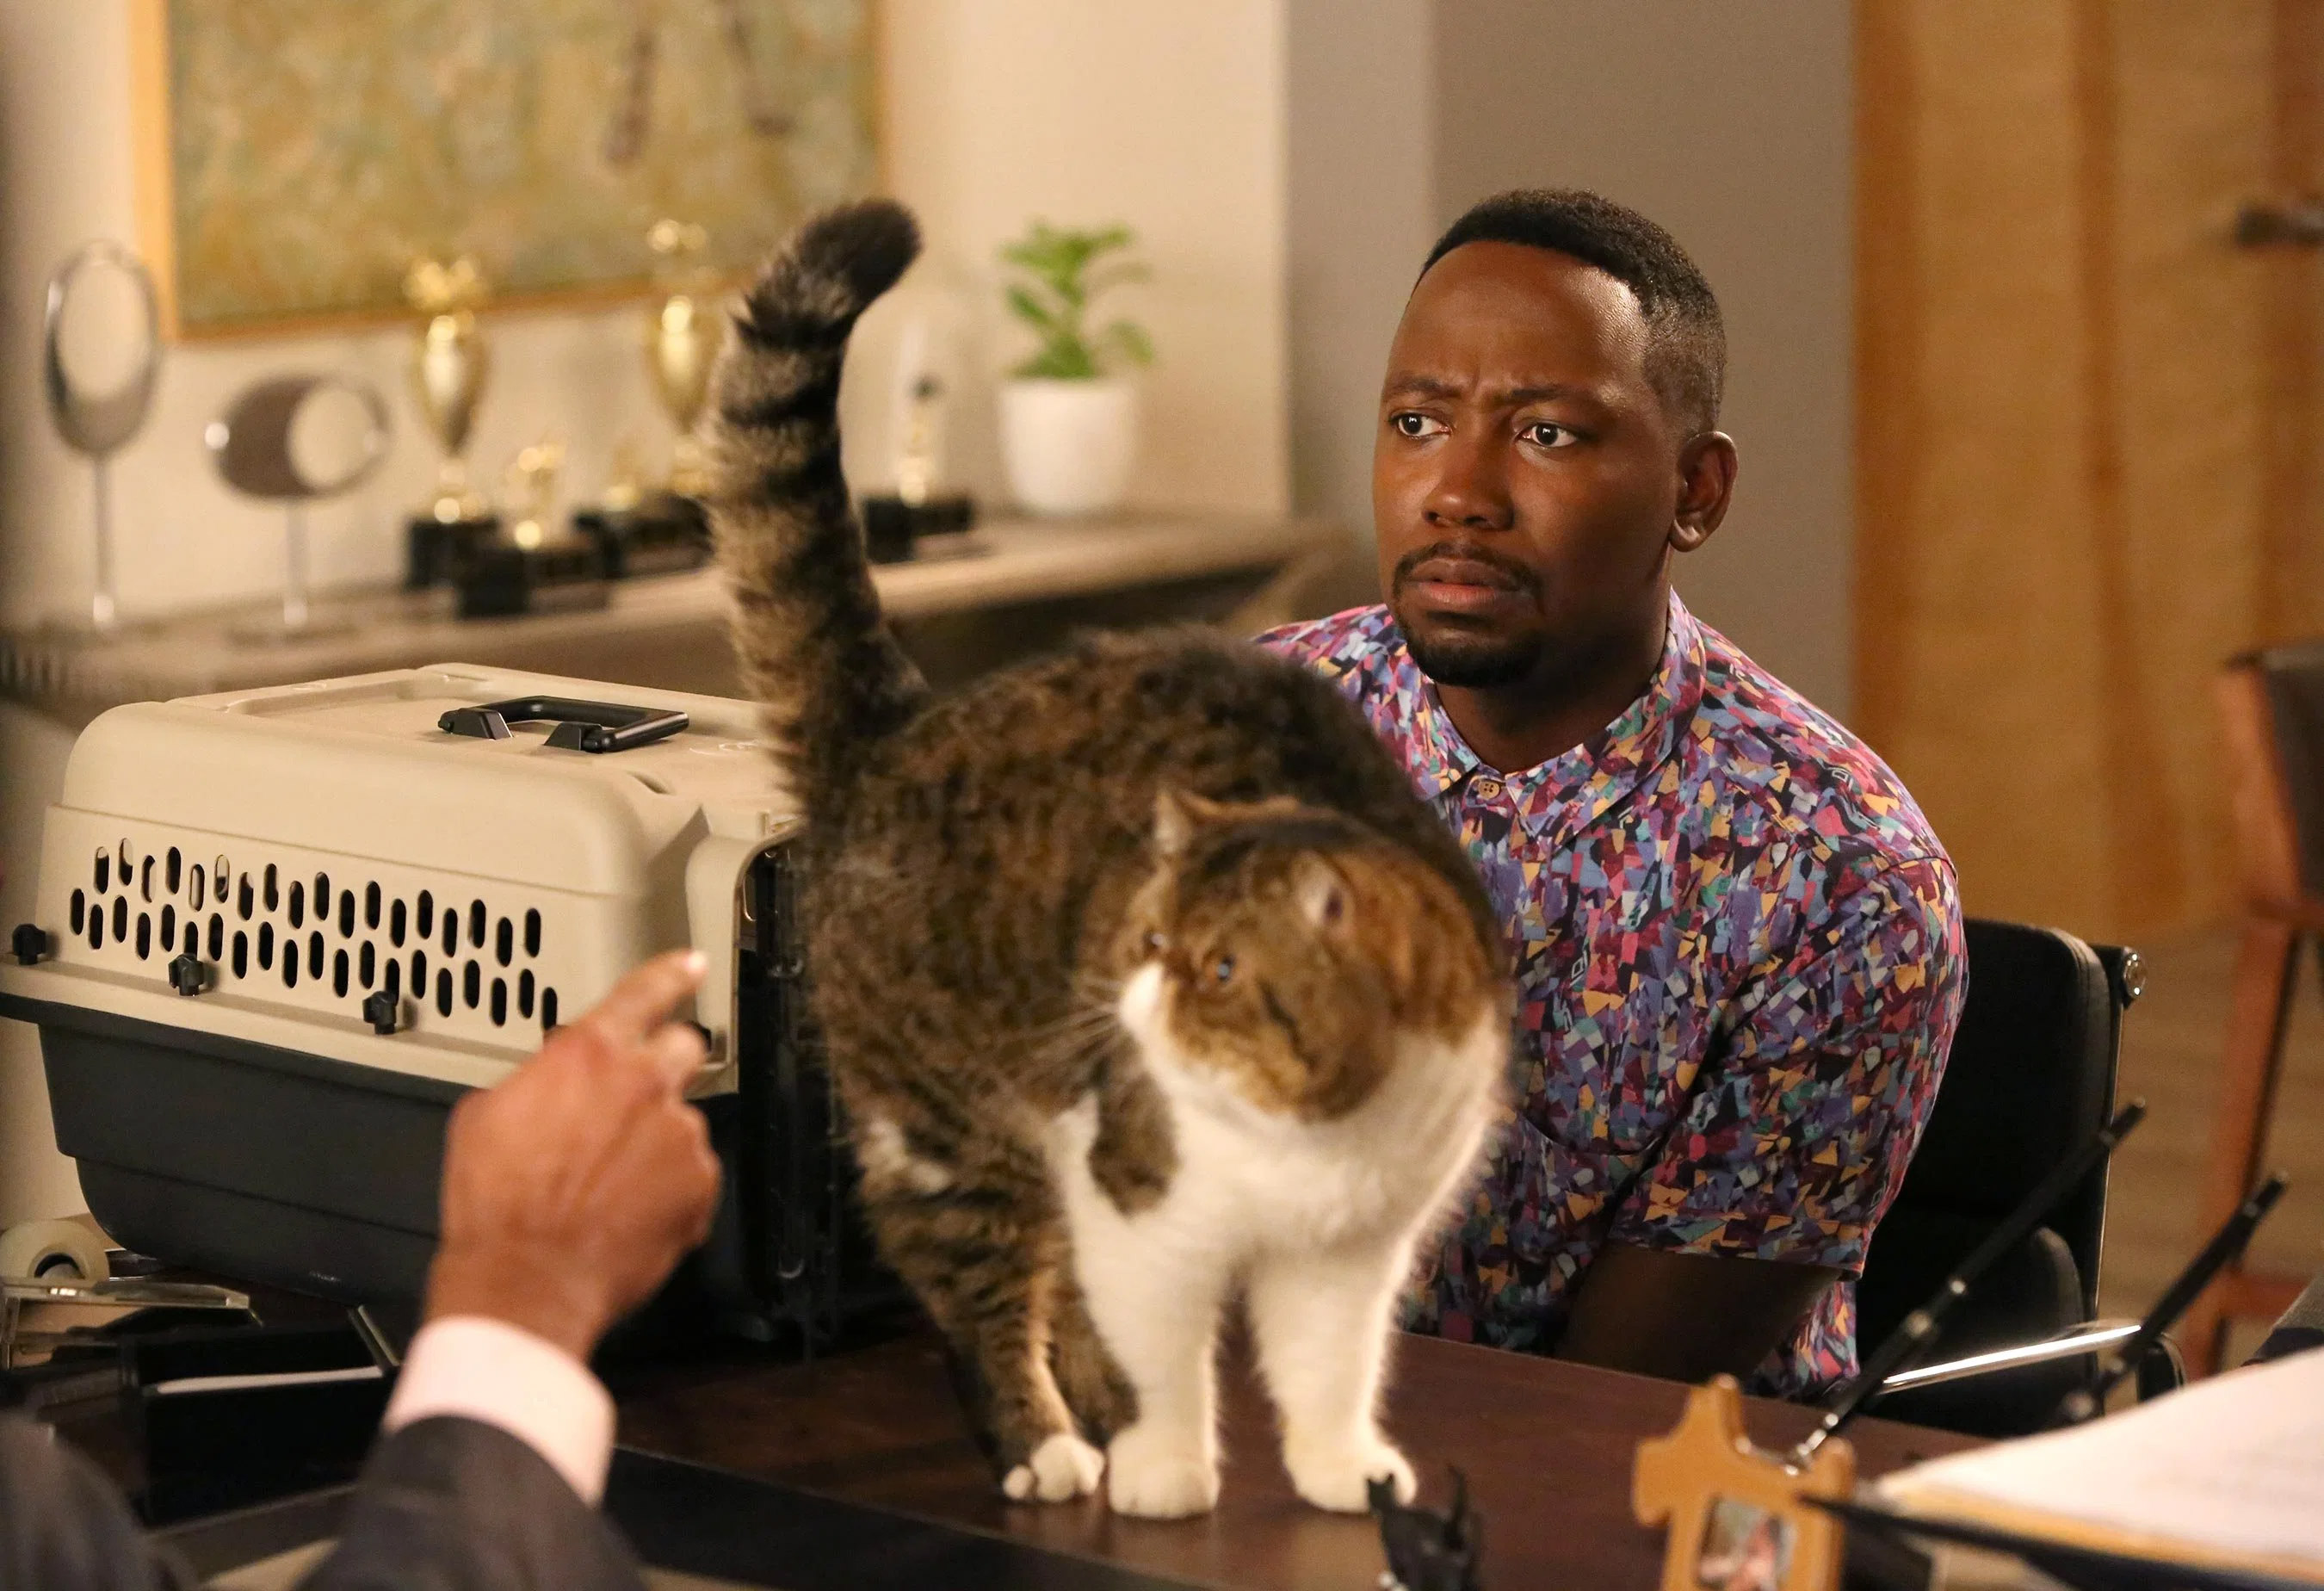 'New Girl's' Lamorne Morris Expresses Righteous Indignation After Bullshit Arrest